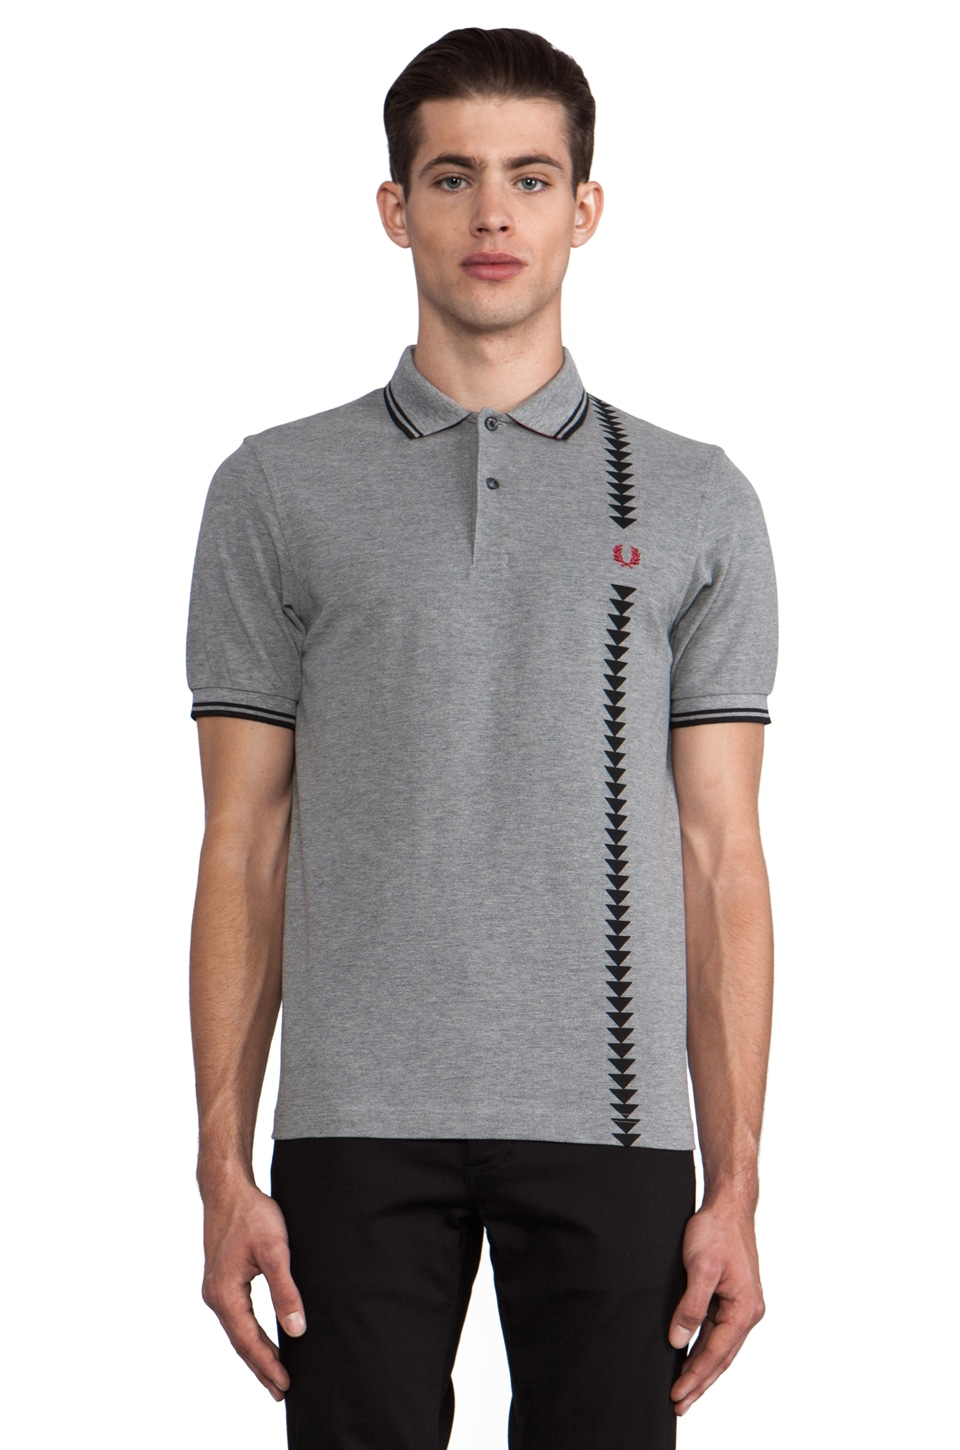 Fred Perry 45's Vertical Print Polo in Steel Marl